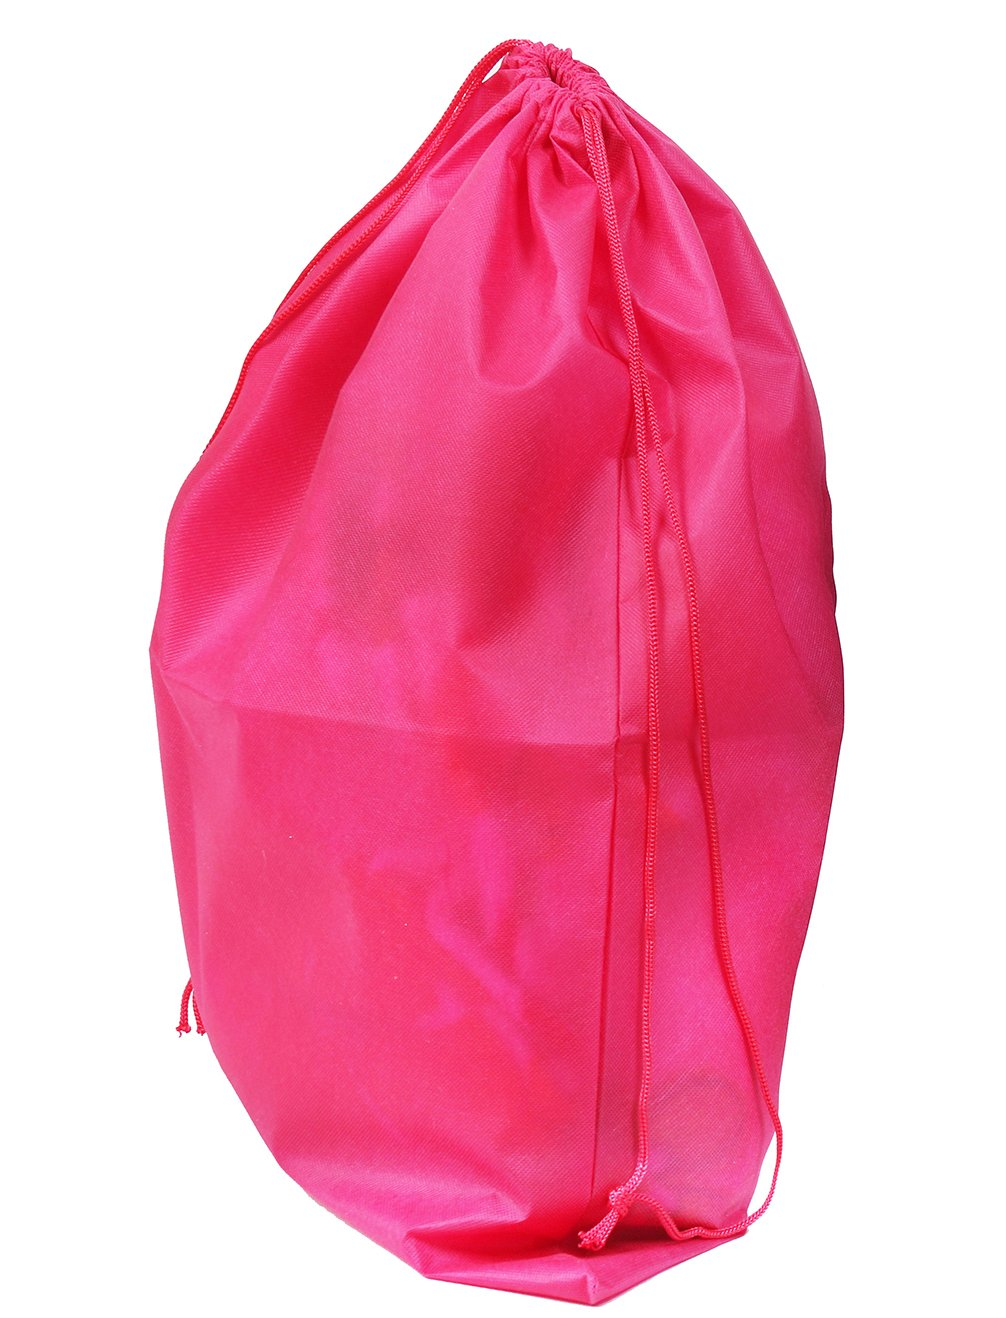 Set of 2 Large Travel Boot Bags, Portable Shoe Bags with Drawstring, 20'' x 24'', Hot Pink